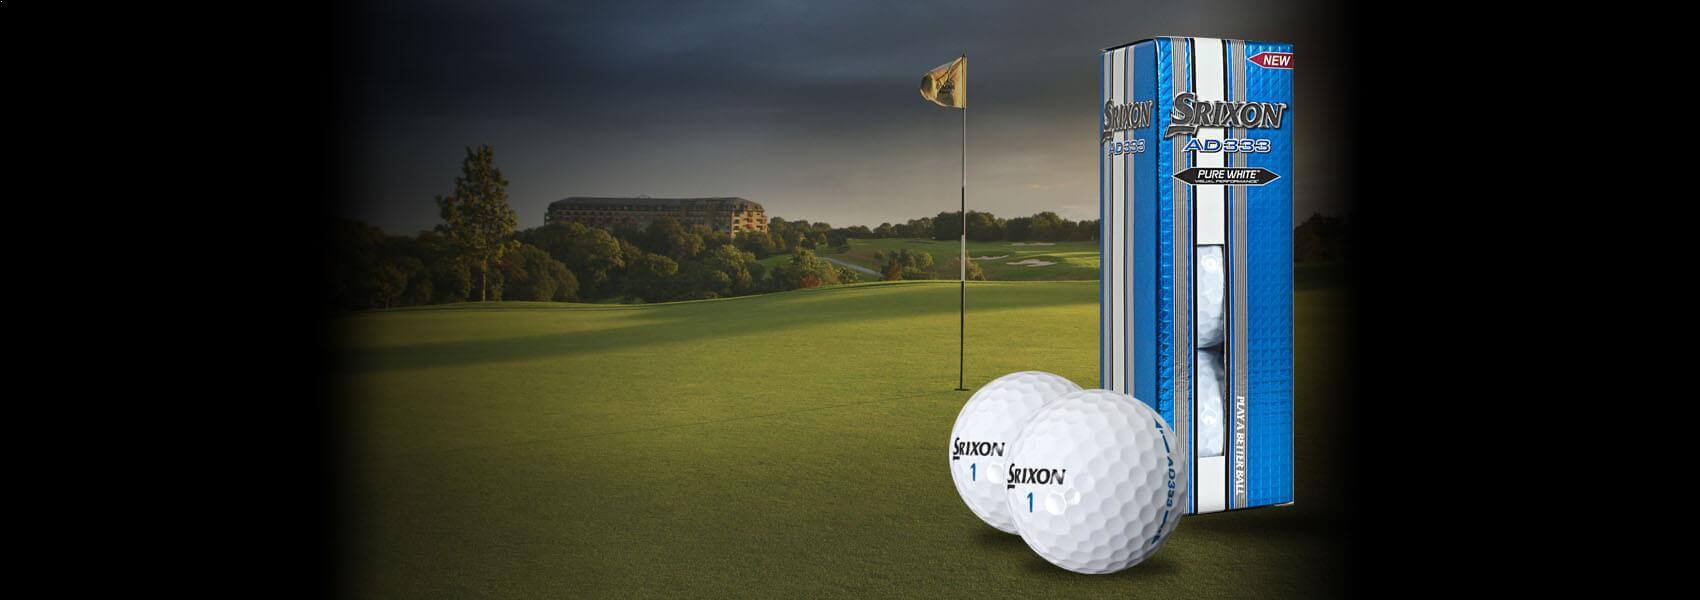 5 free rounds of golf, 5 greenfree 2 for 1 vouchers, three complimentary golf balls when you join by direct debit